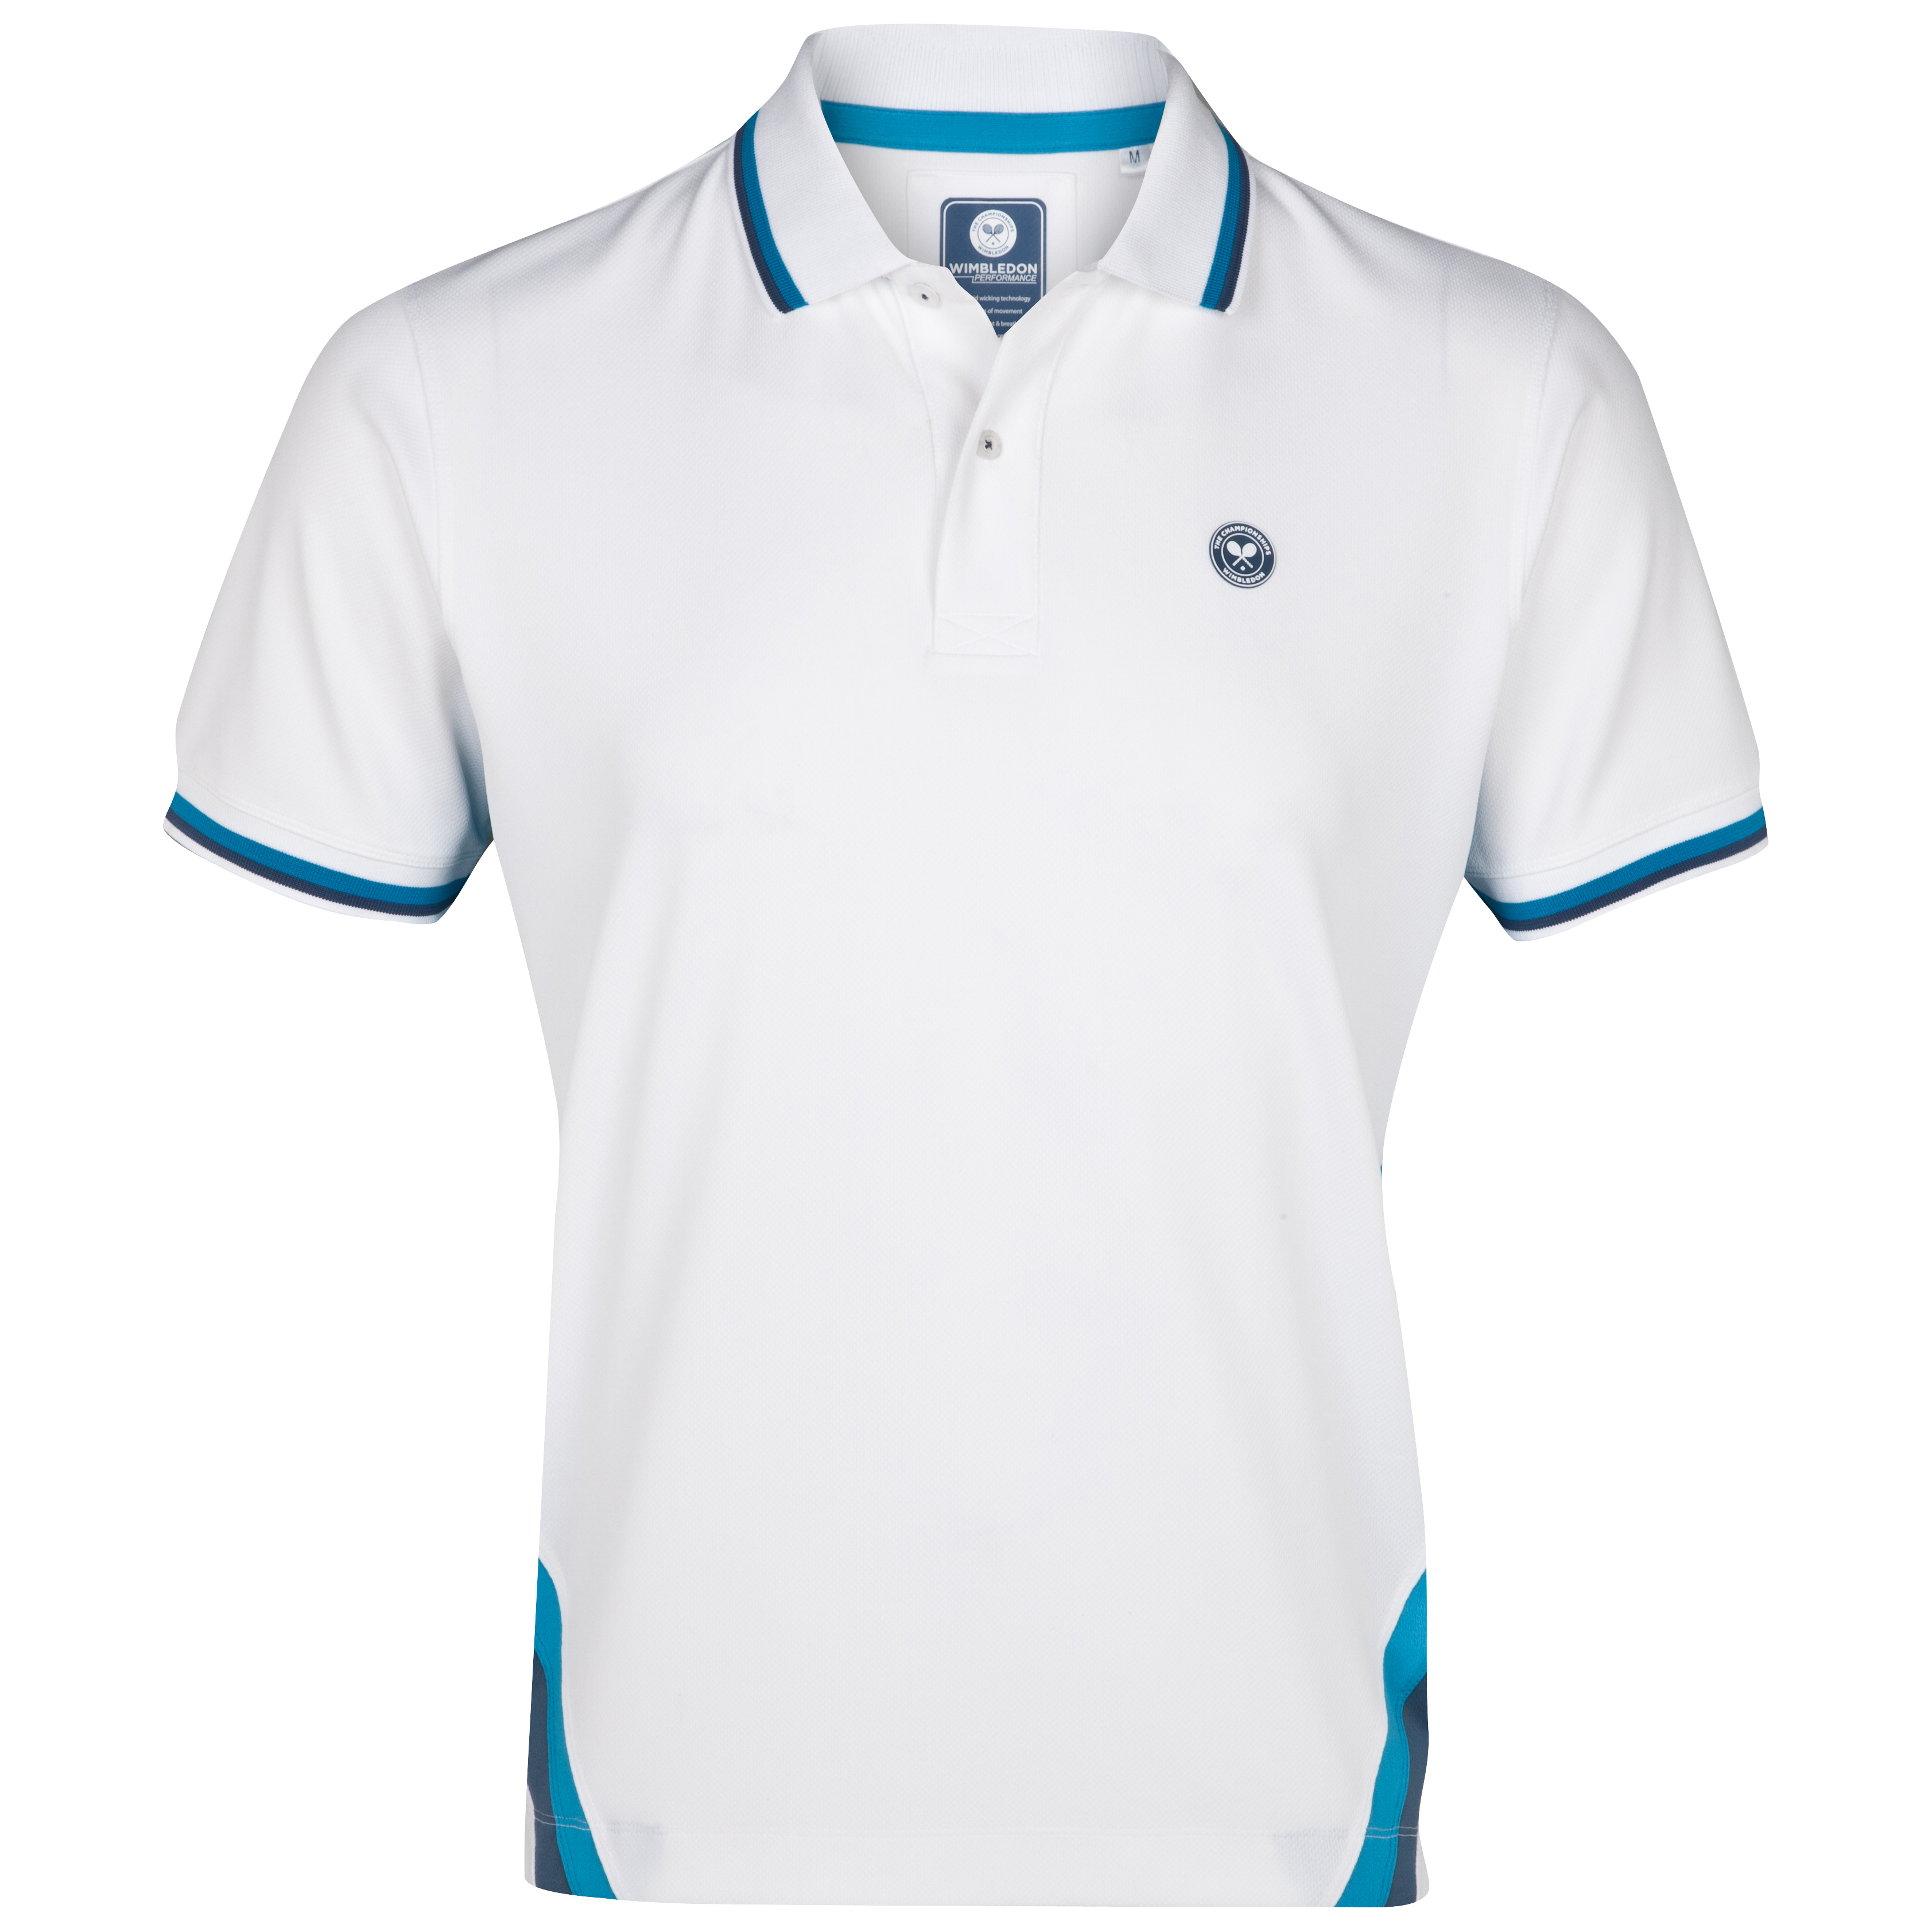 Wimbledon Player Polo Shirt - White